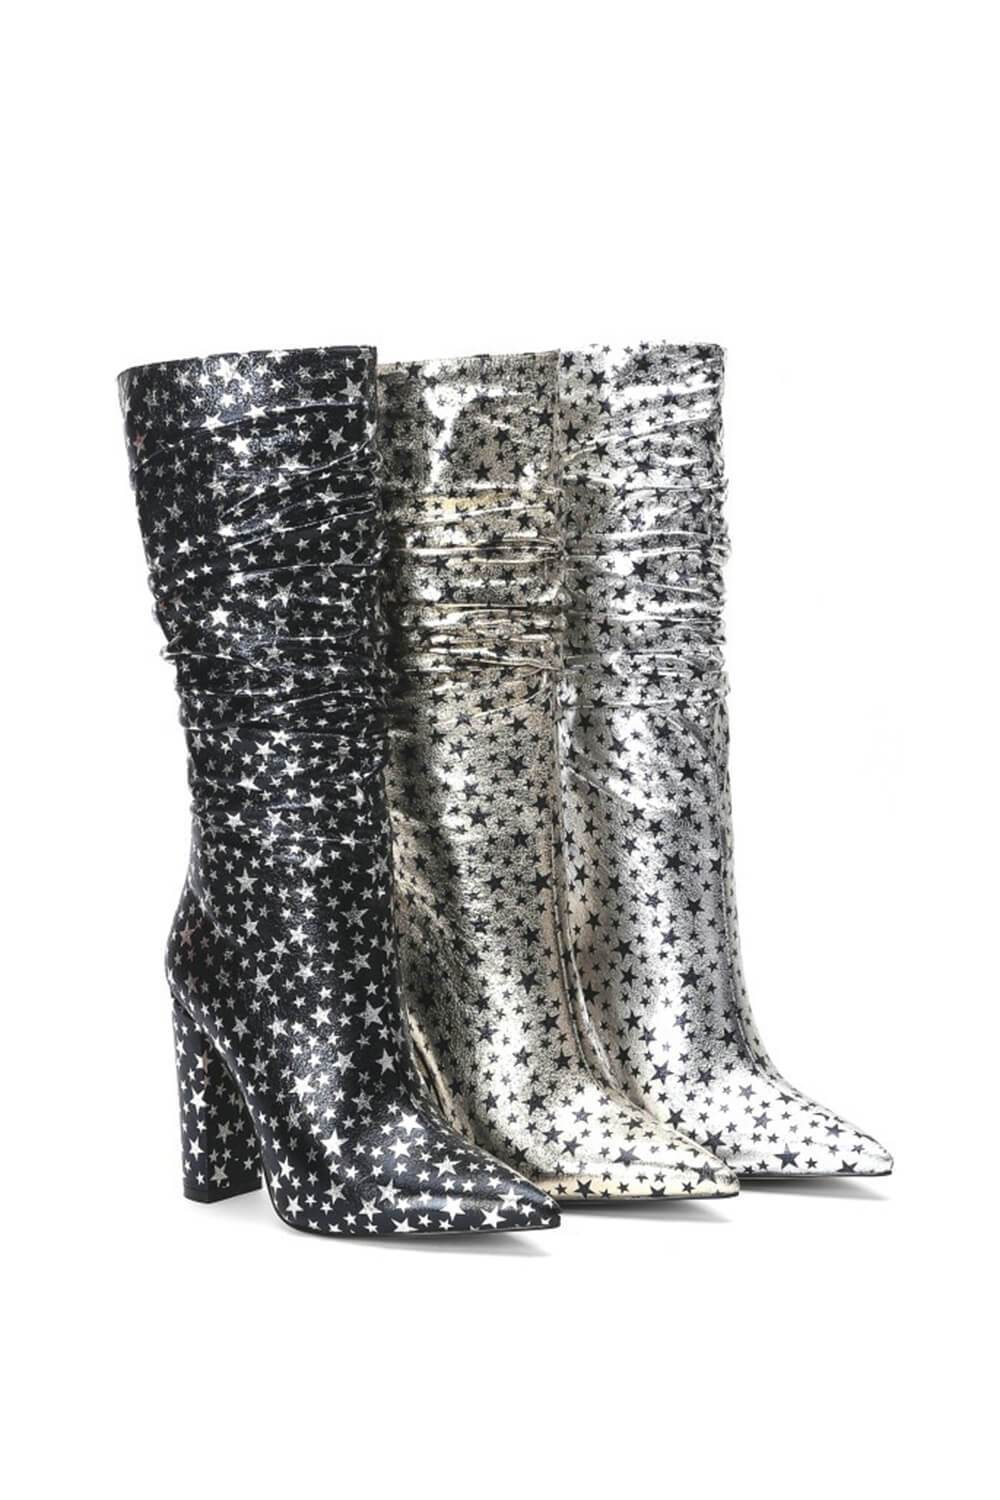 Metallic Black Glitter Star Ruched Kee High Boots (4307981172795)